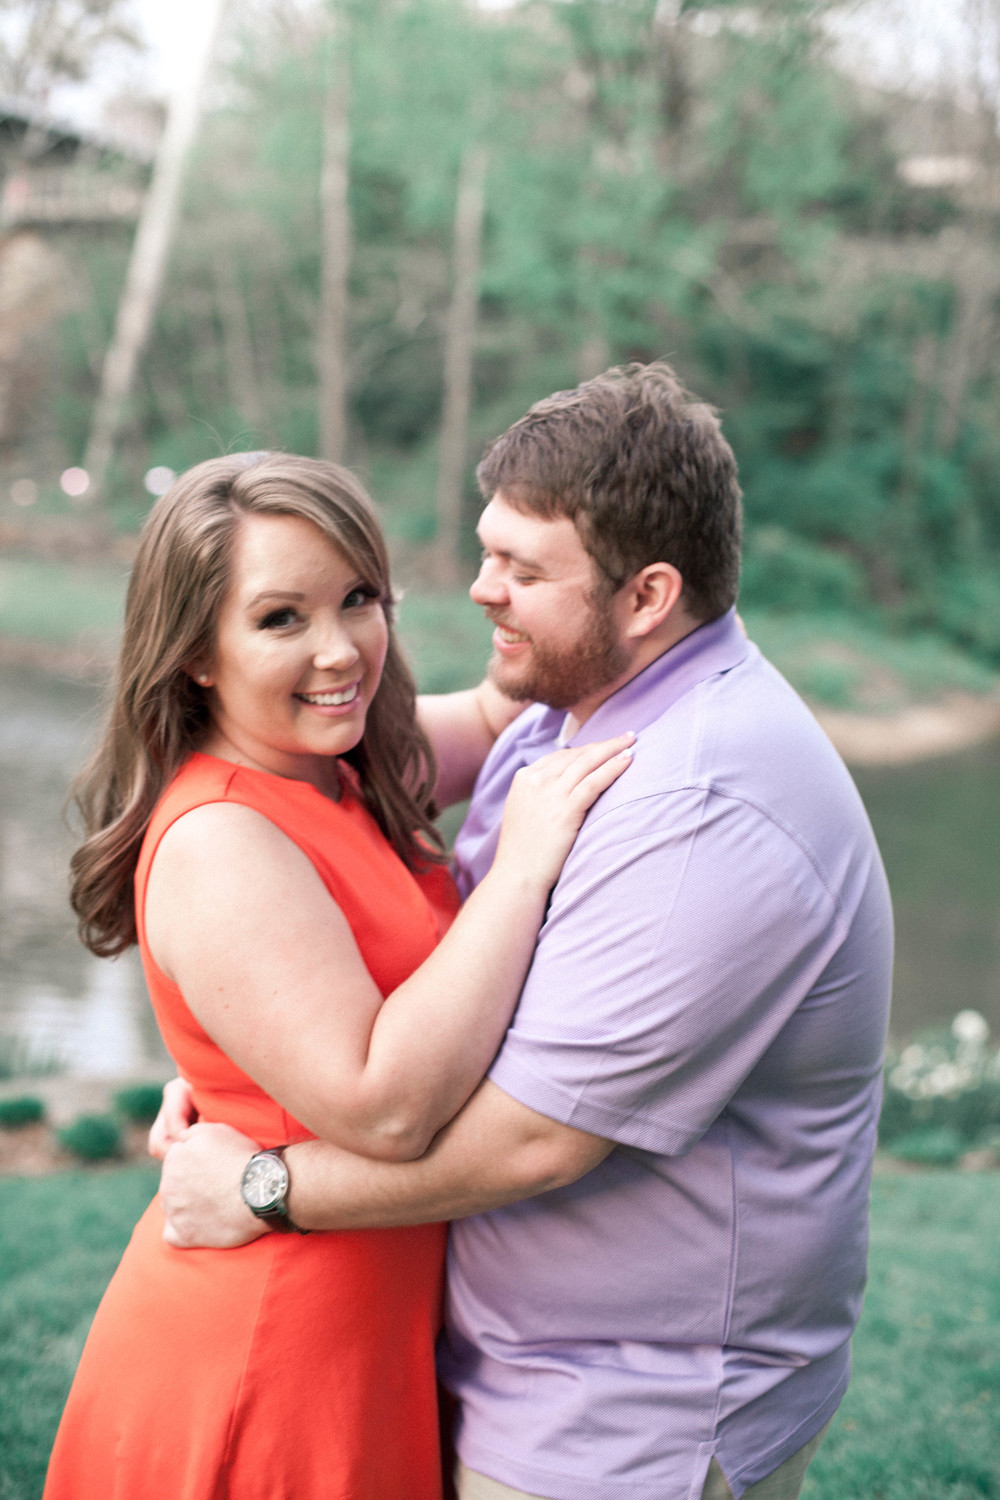 zach_gabbie_engagement_poured_out_photography-48.jpg